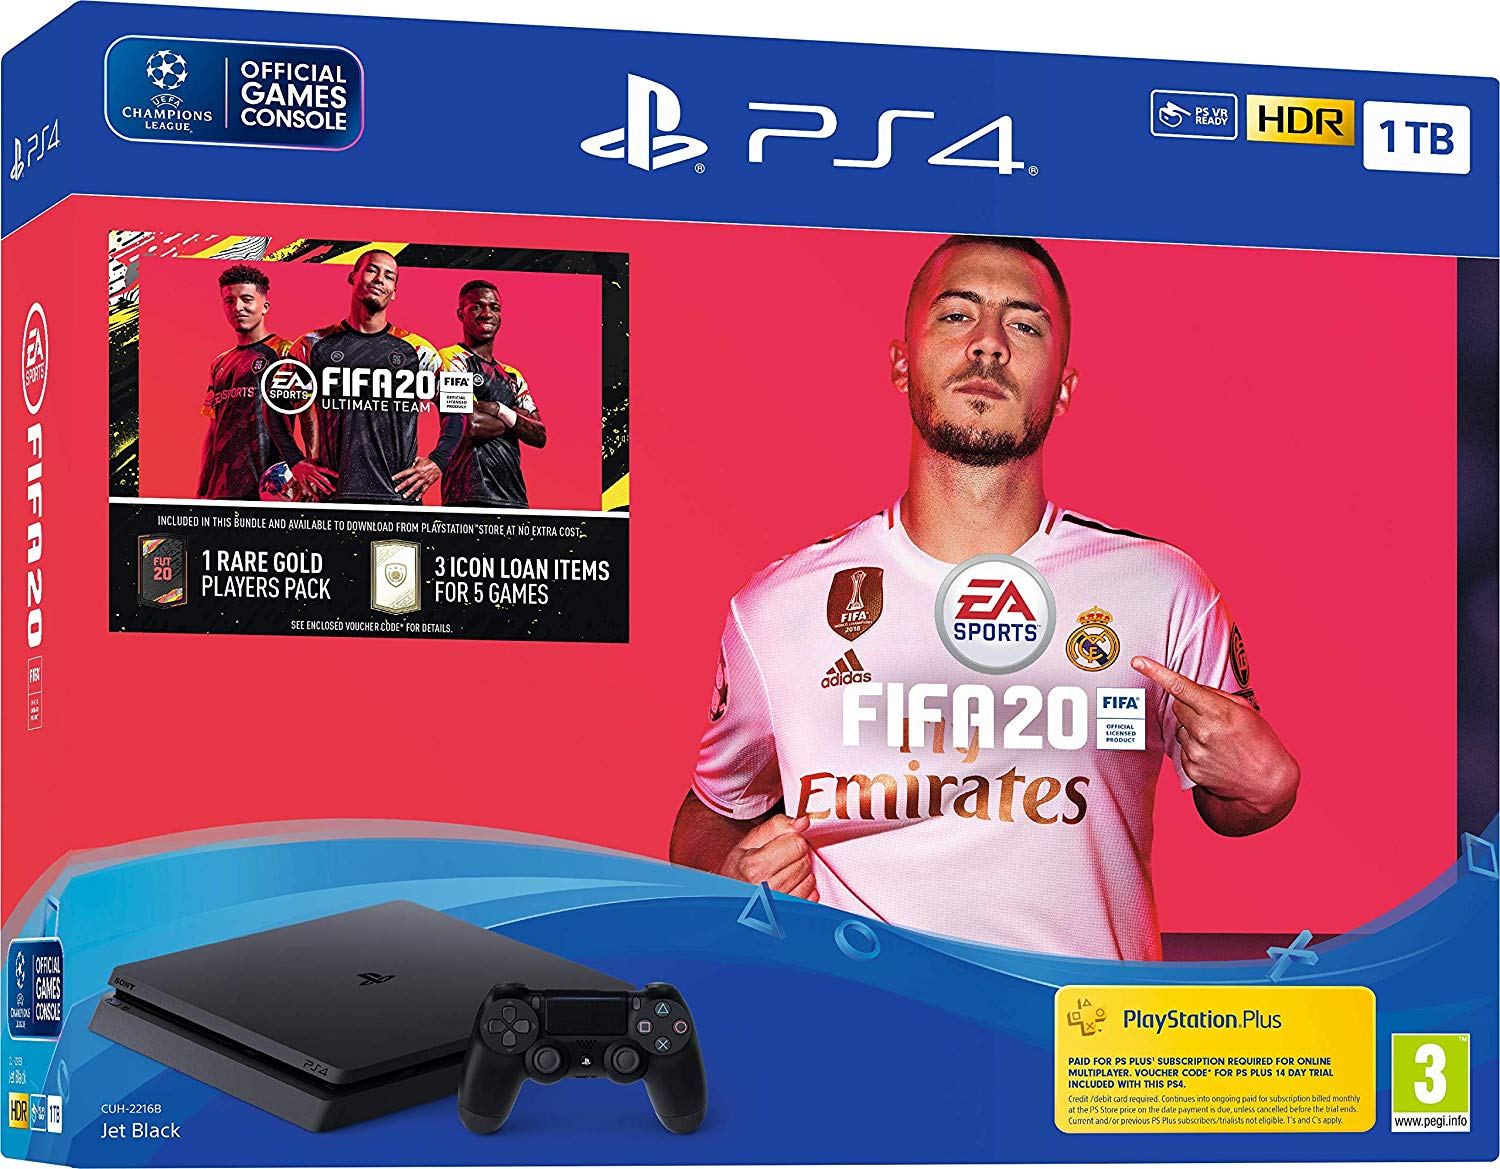 Sony PlayStation 4 Slim 1TB with FIFA 20 - Black (PS4)